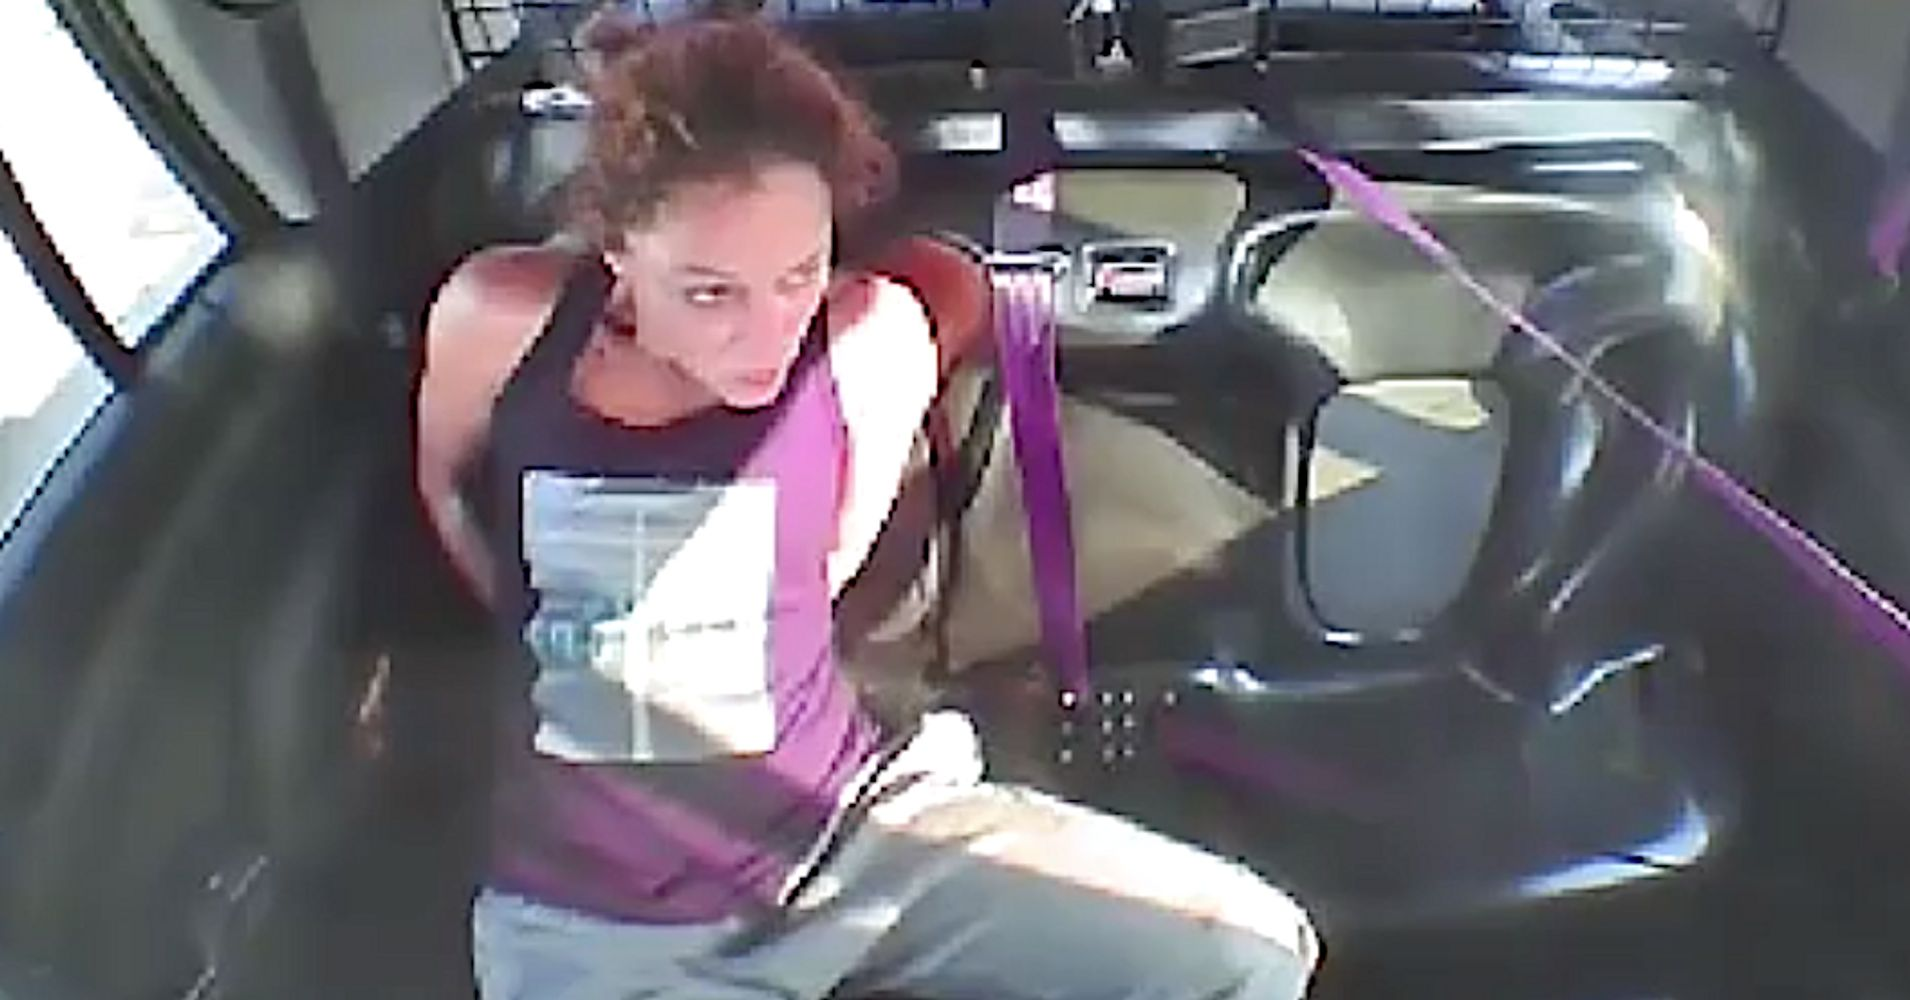 Video: Woman slips cuffs, leads police on high-speed chase